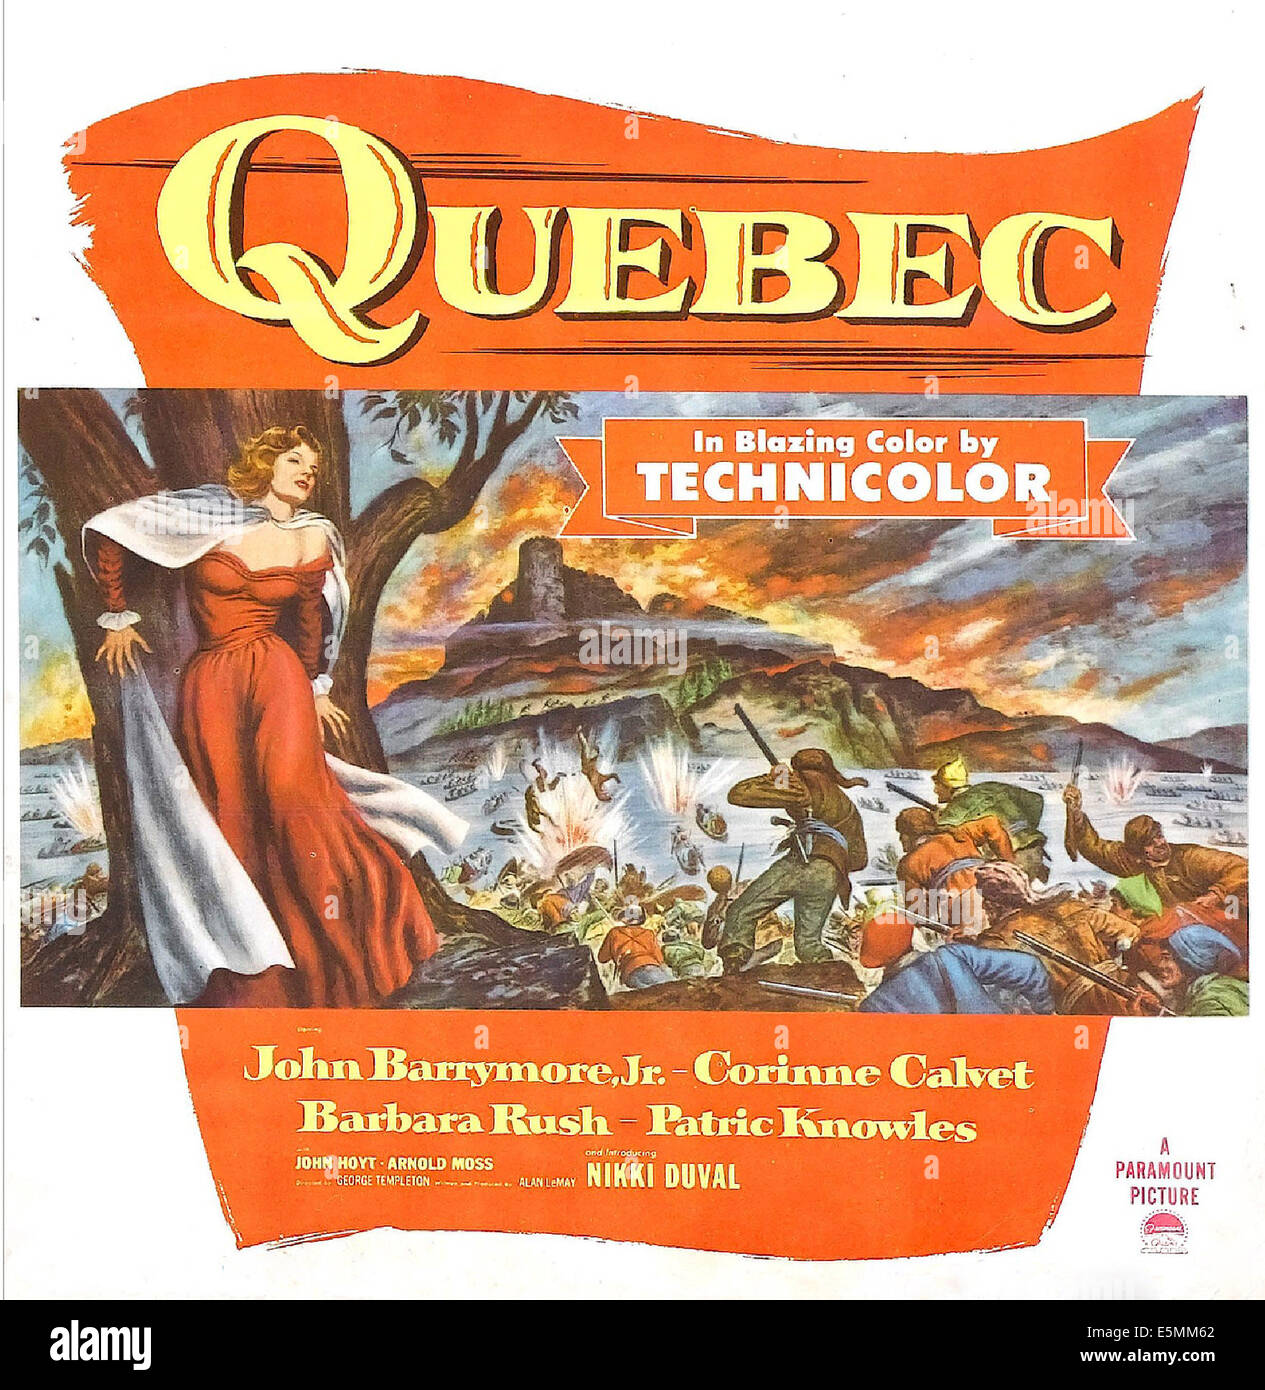 QUEBEC, US poster art, 1951. - Stock Image